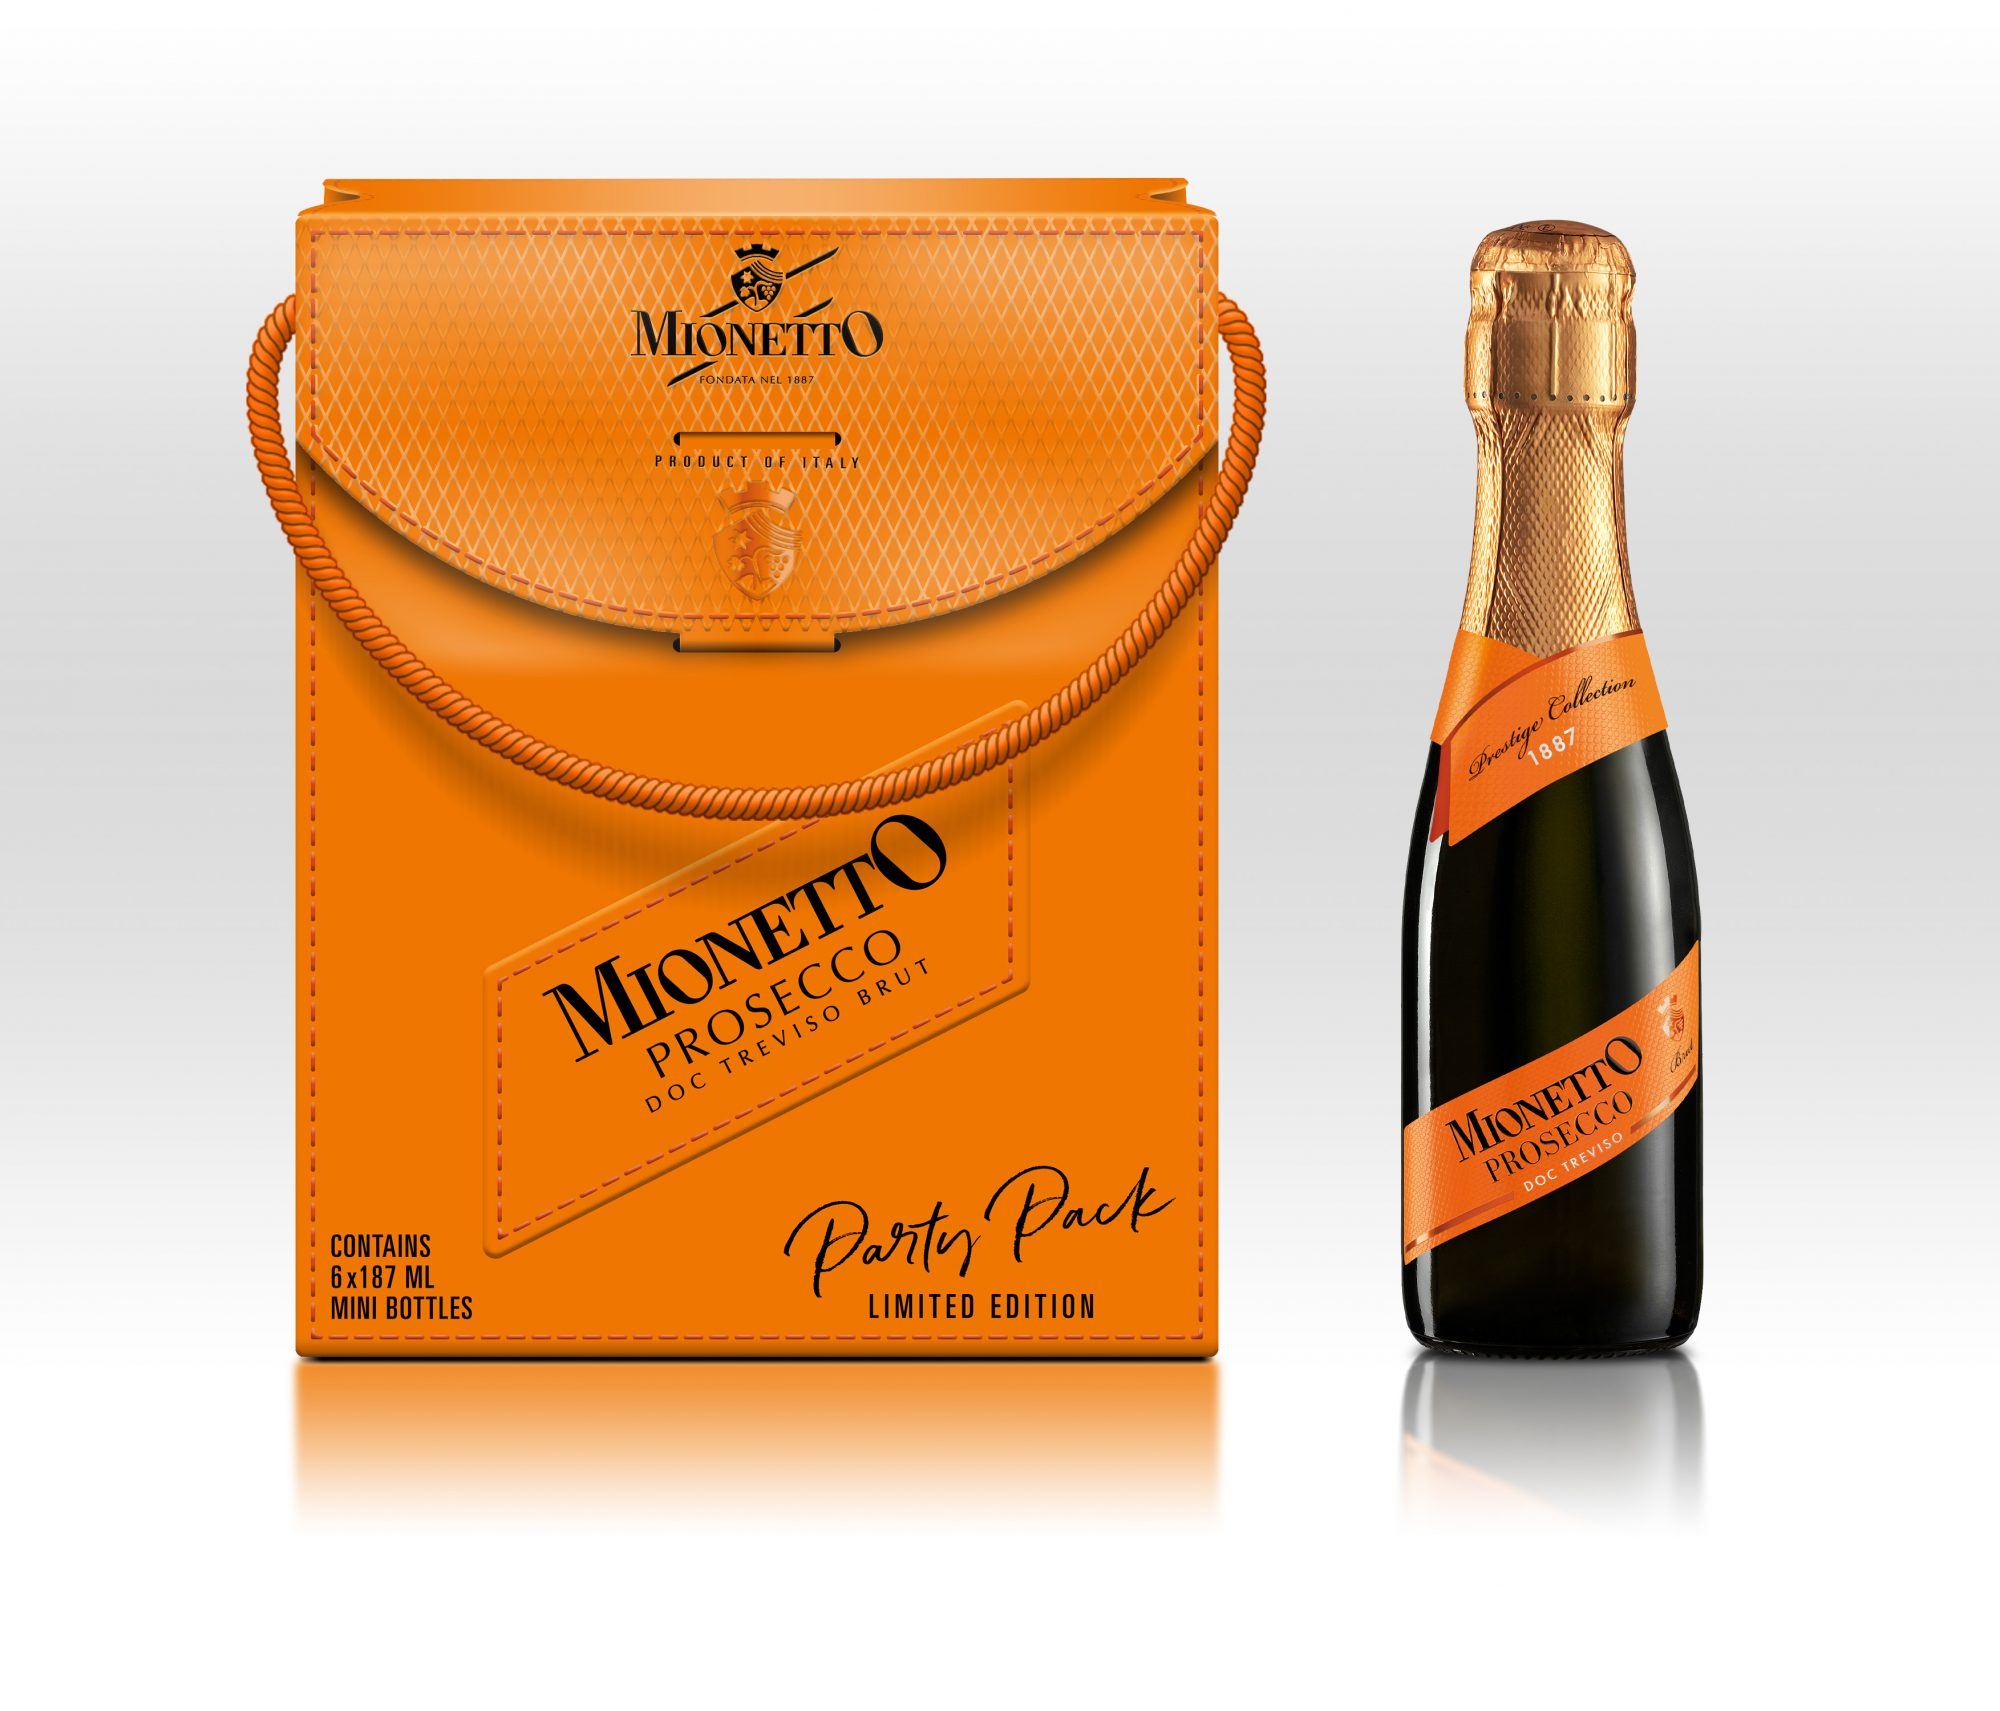 Mionetto Prosecco Party Pack